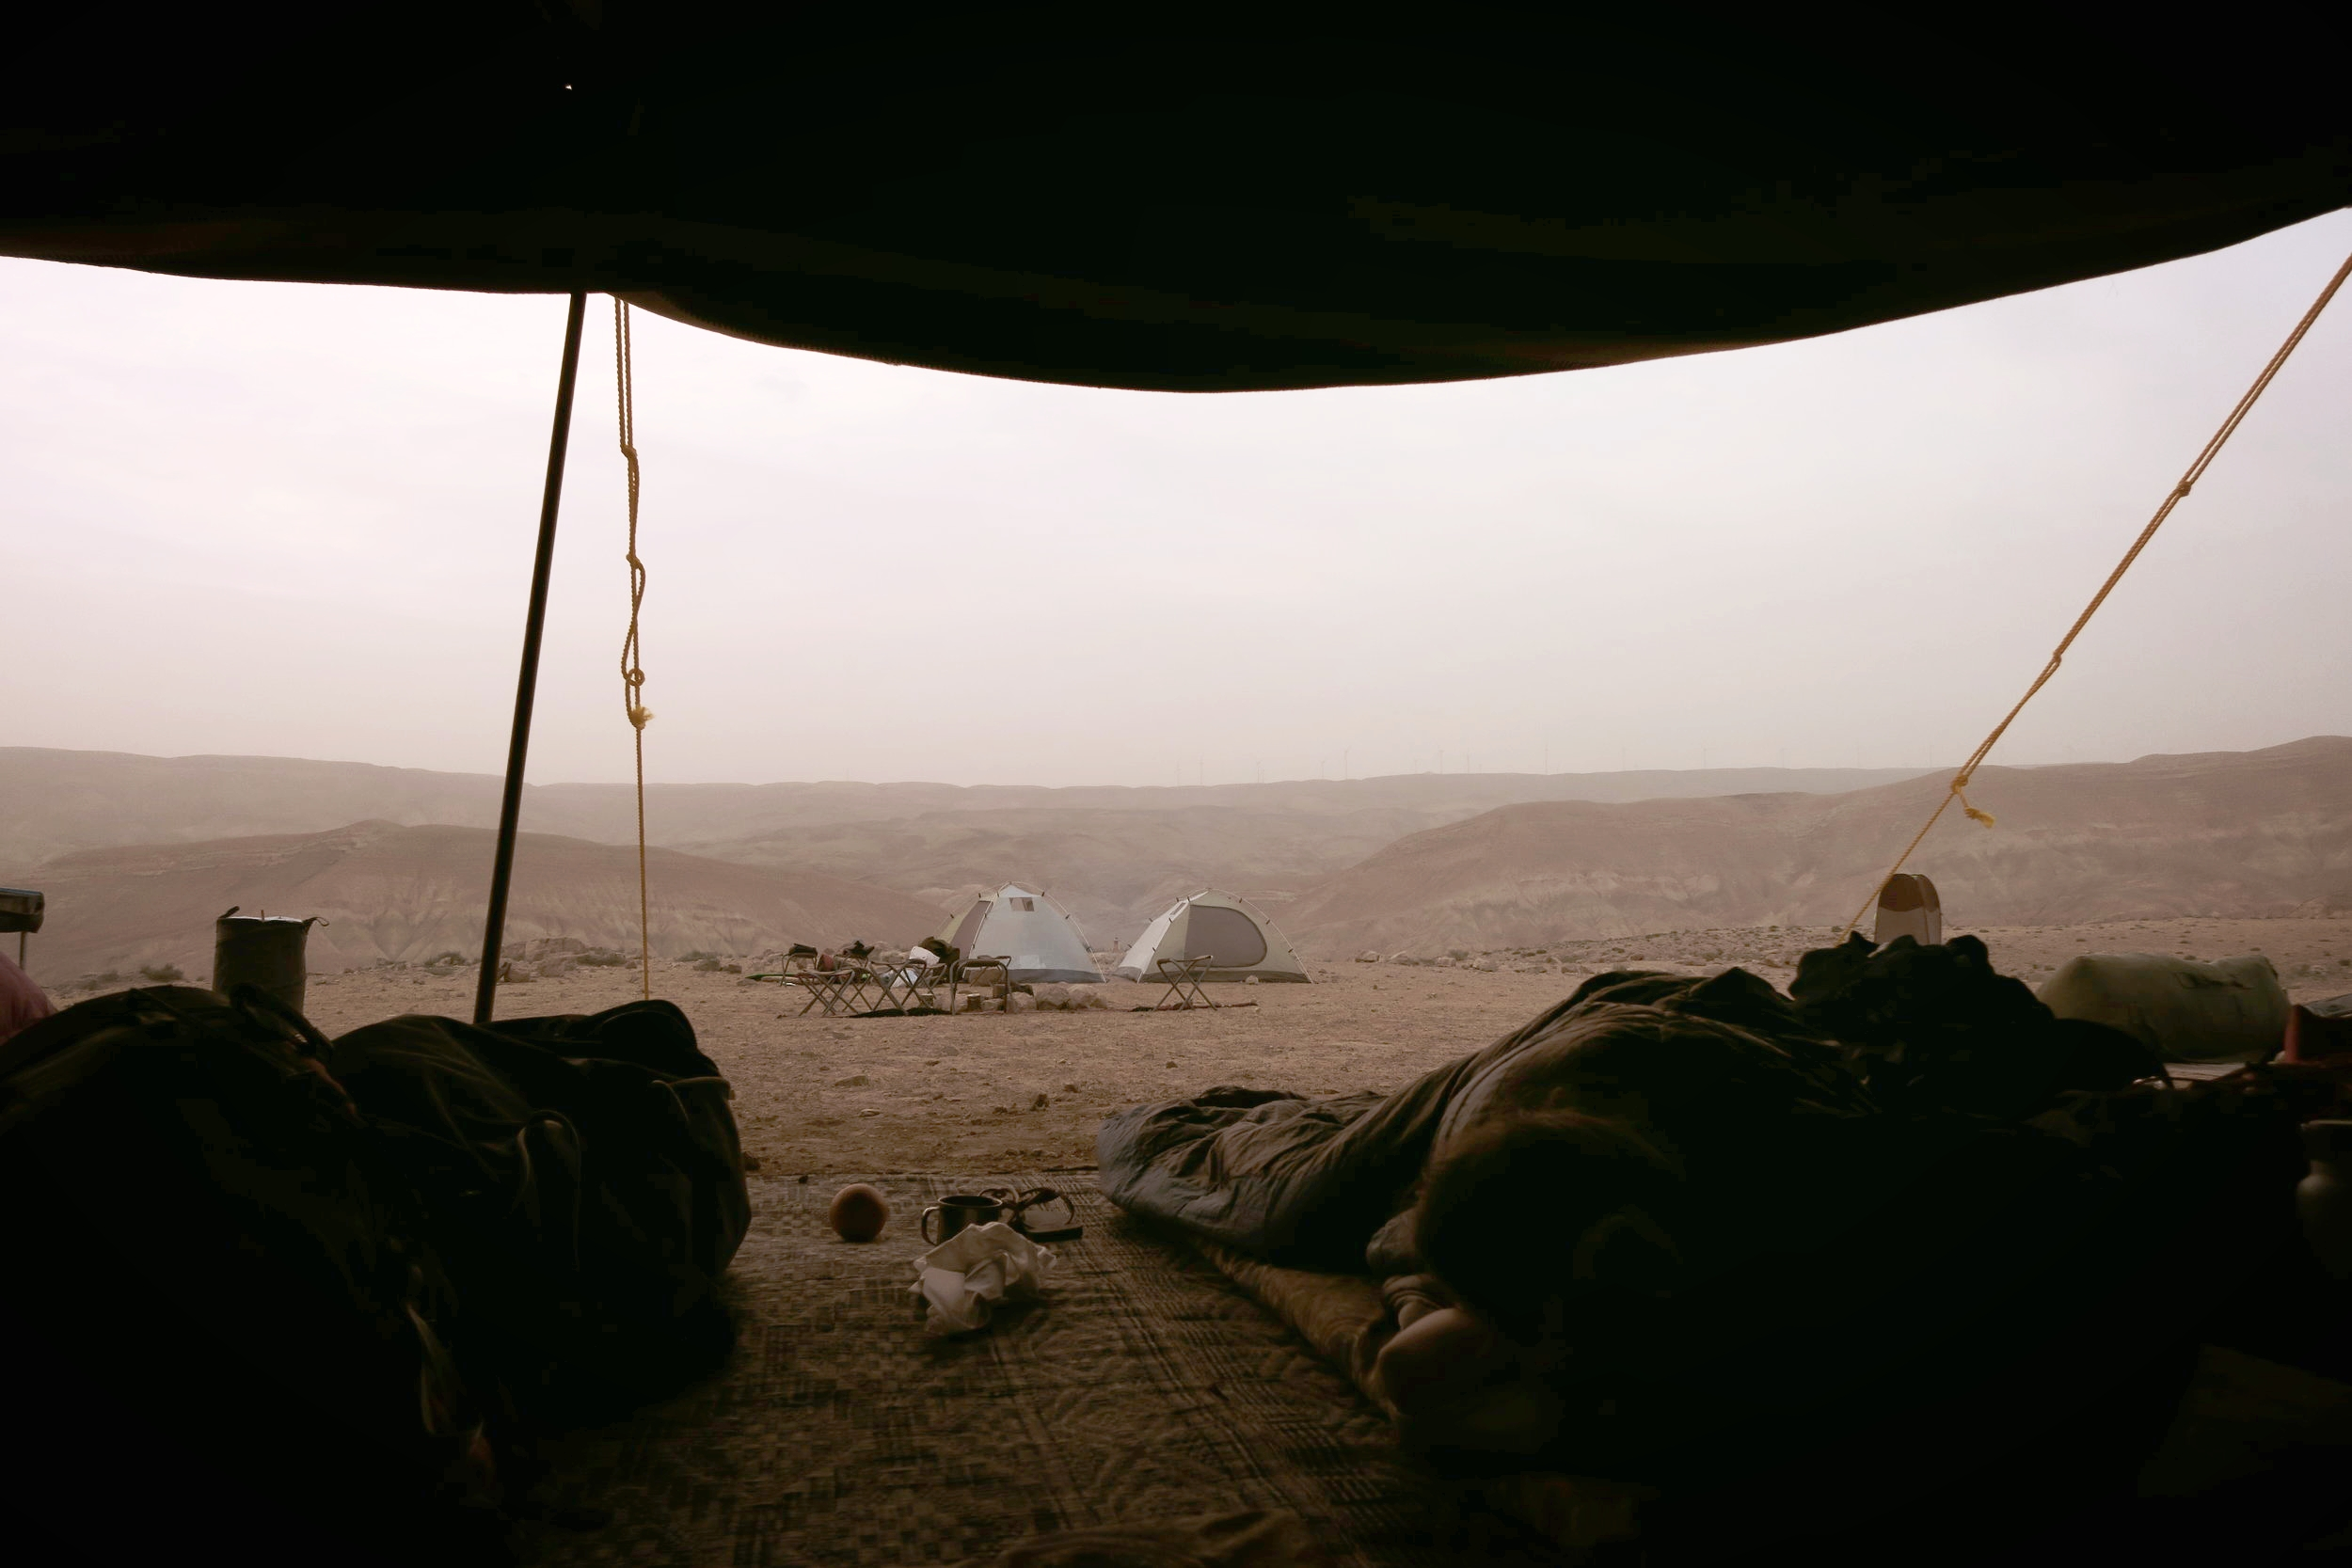 Just one of the desert views you'll get when waking up in the bedouin tent